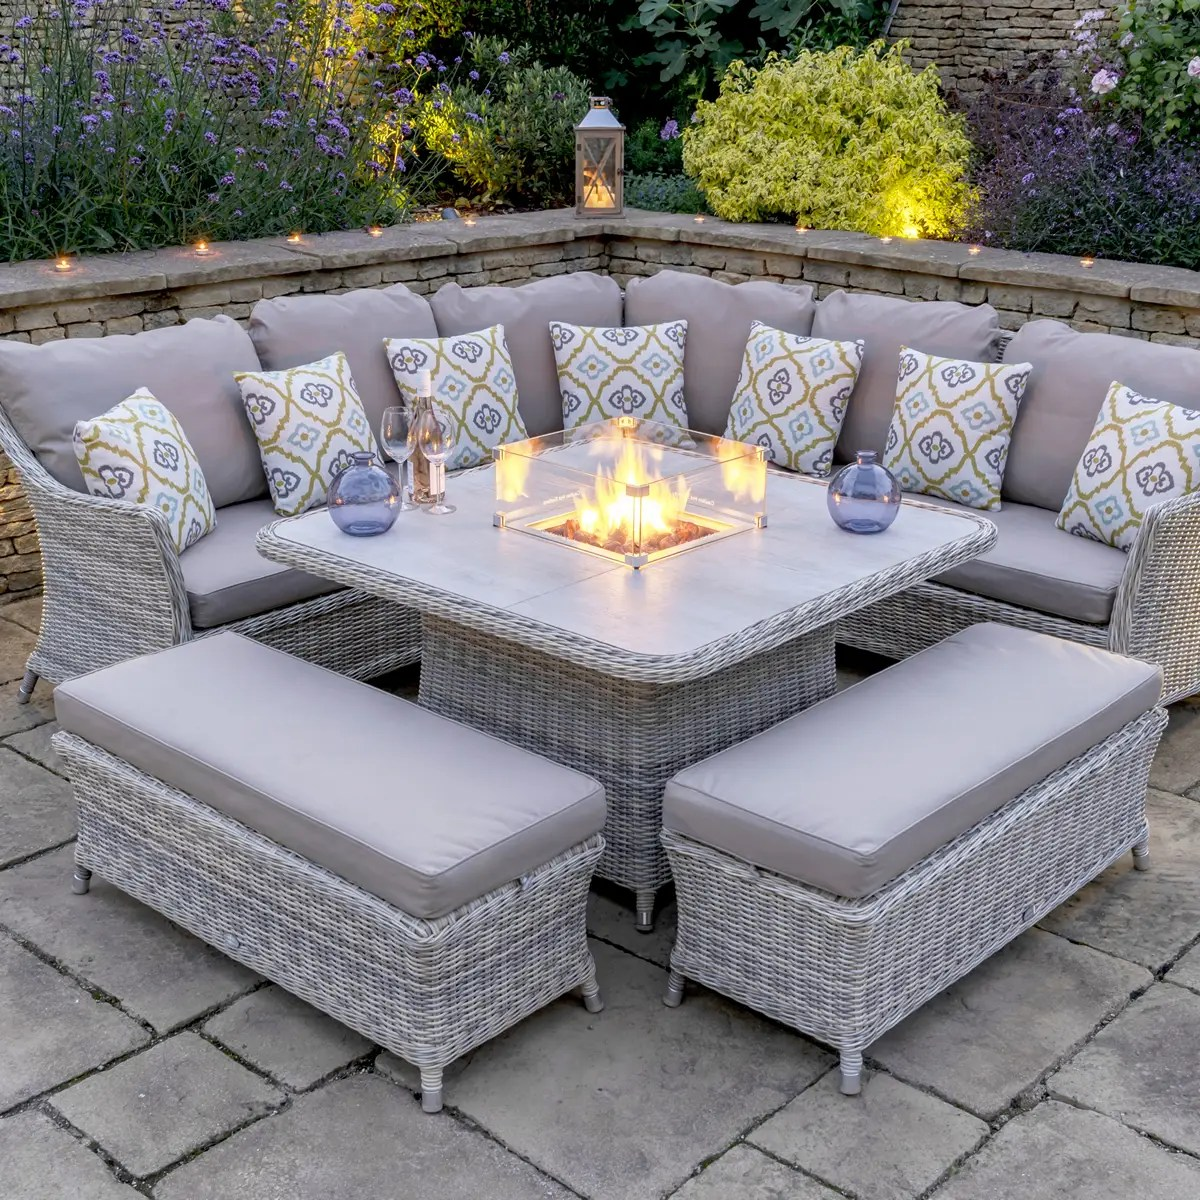 Bramblecrest Ascot Square Casual Dining Table Set With Firepit Ceramic Top With 2 Benches X19wassqcds4fp Garden Furniture World